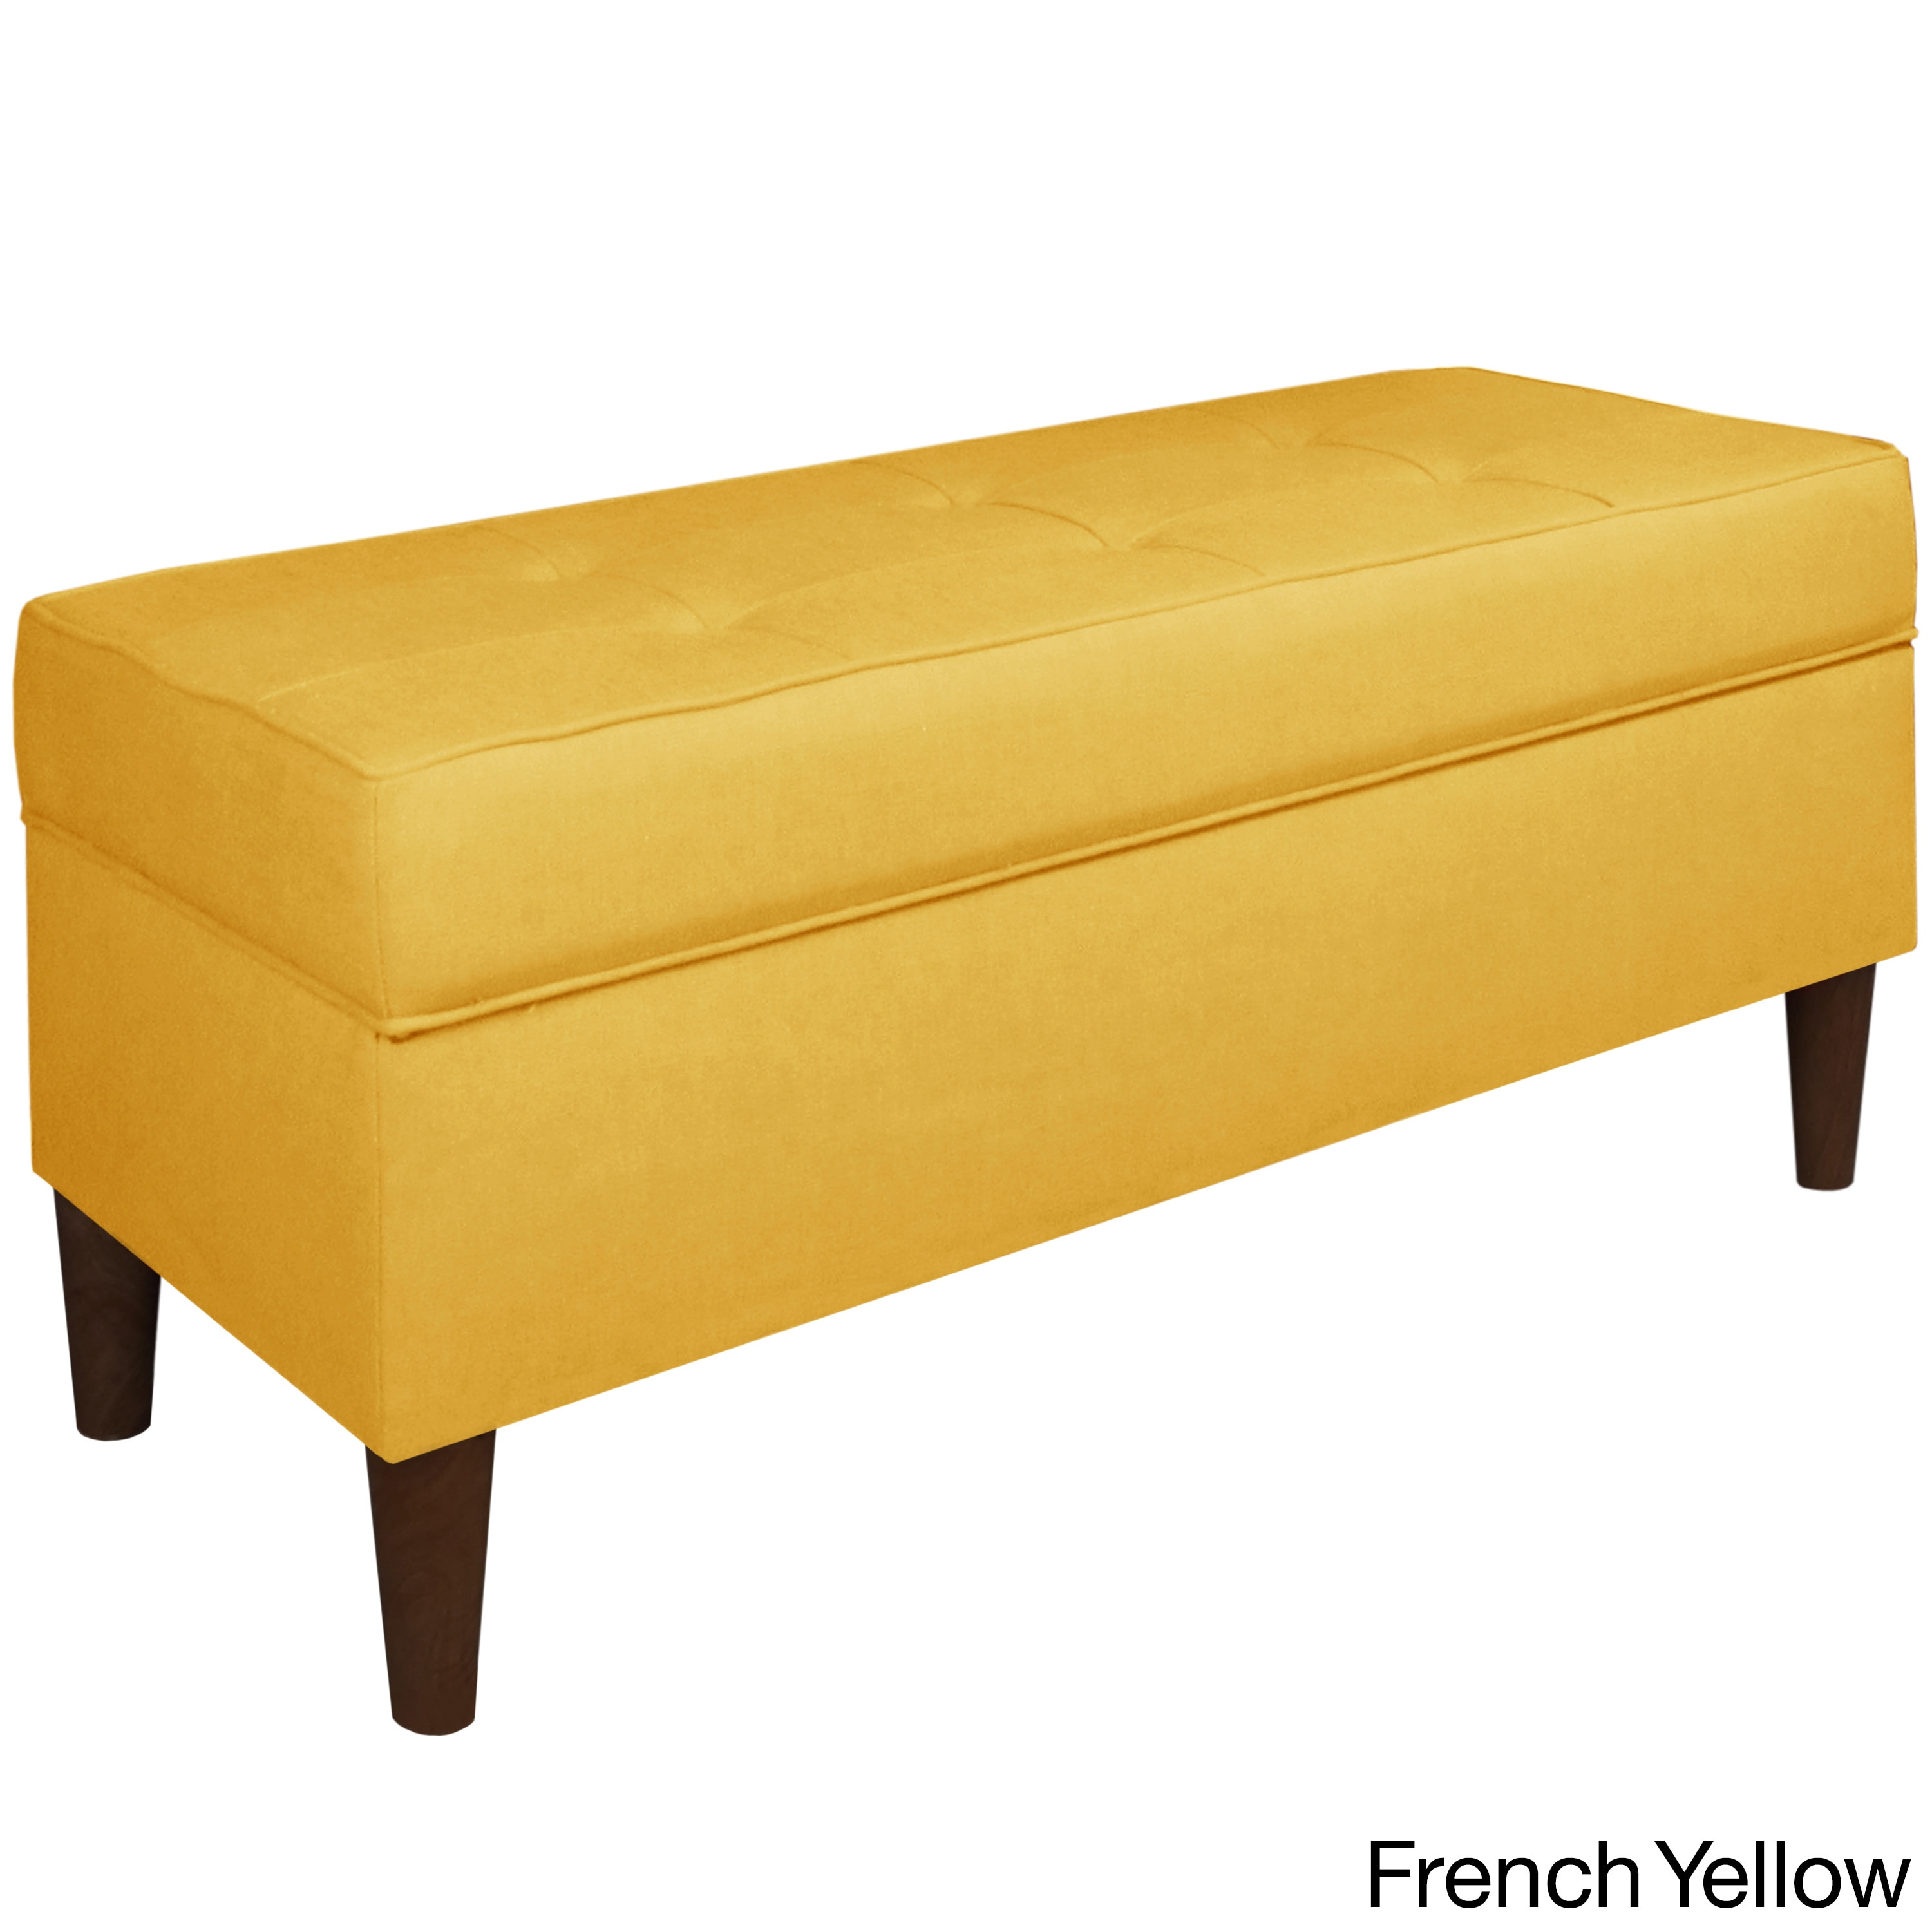 Buy Yellow Online At Overstock.com | Our Best Living Room Furniture Deals